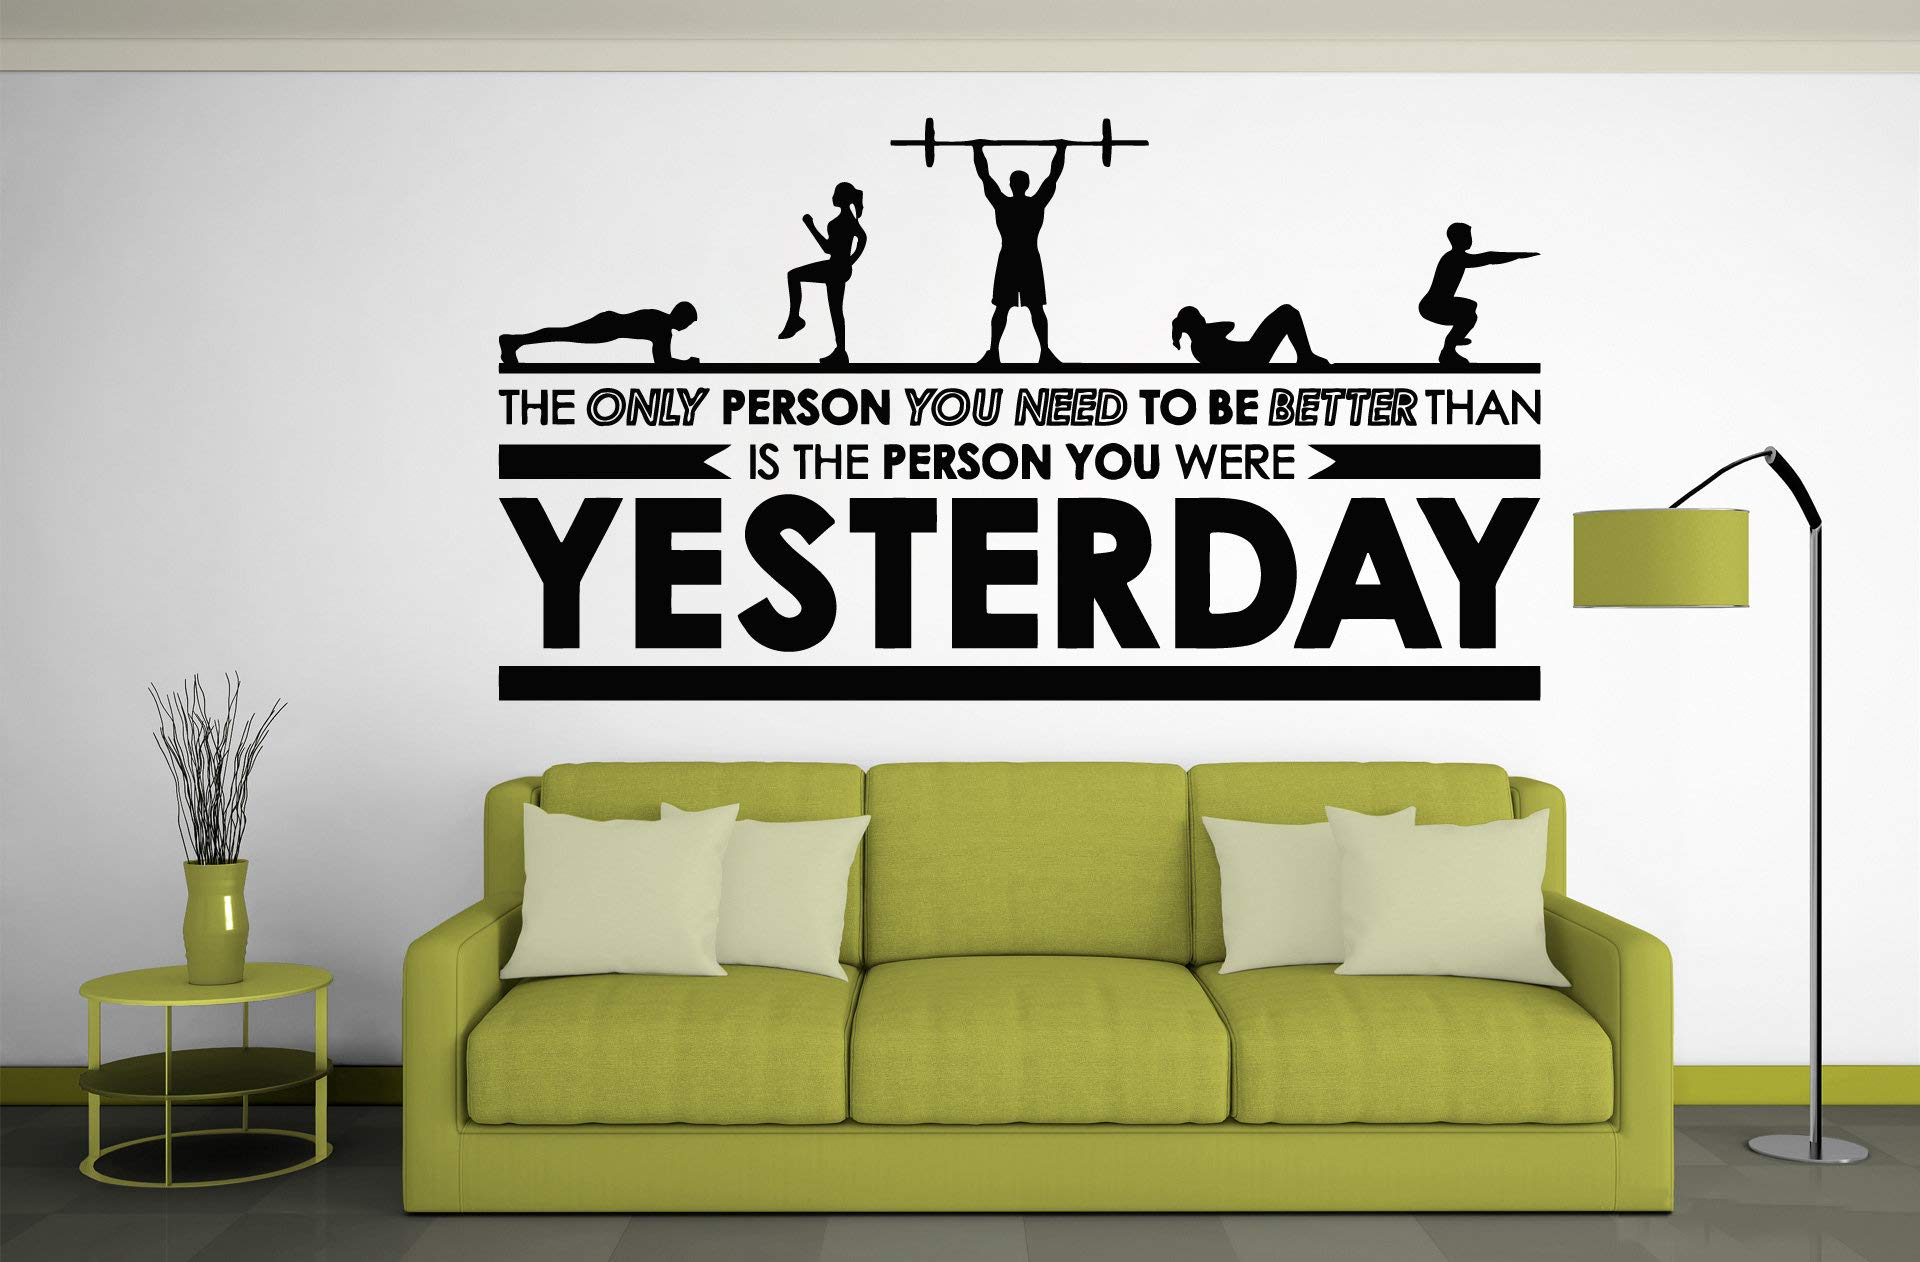 Motivational Inspirational Gym Wall Decals - Workout Fitness Crossfit Exercise Room Art Decor Vinyl Stickers - Quotes Sayings Signs Poster Decorations - Beast Mode On GY331